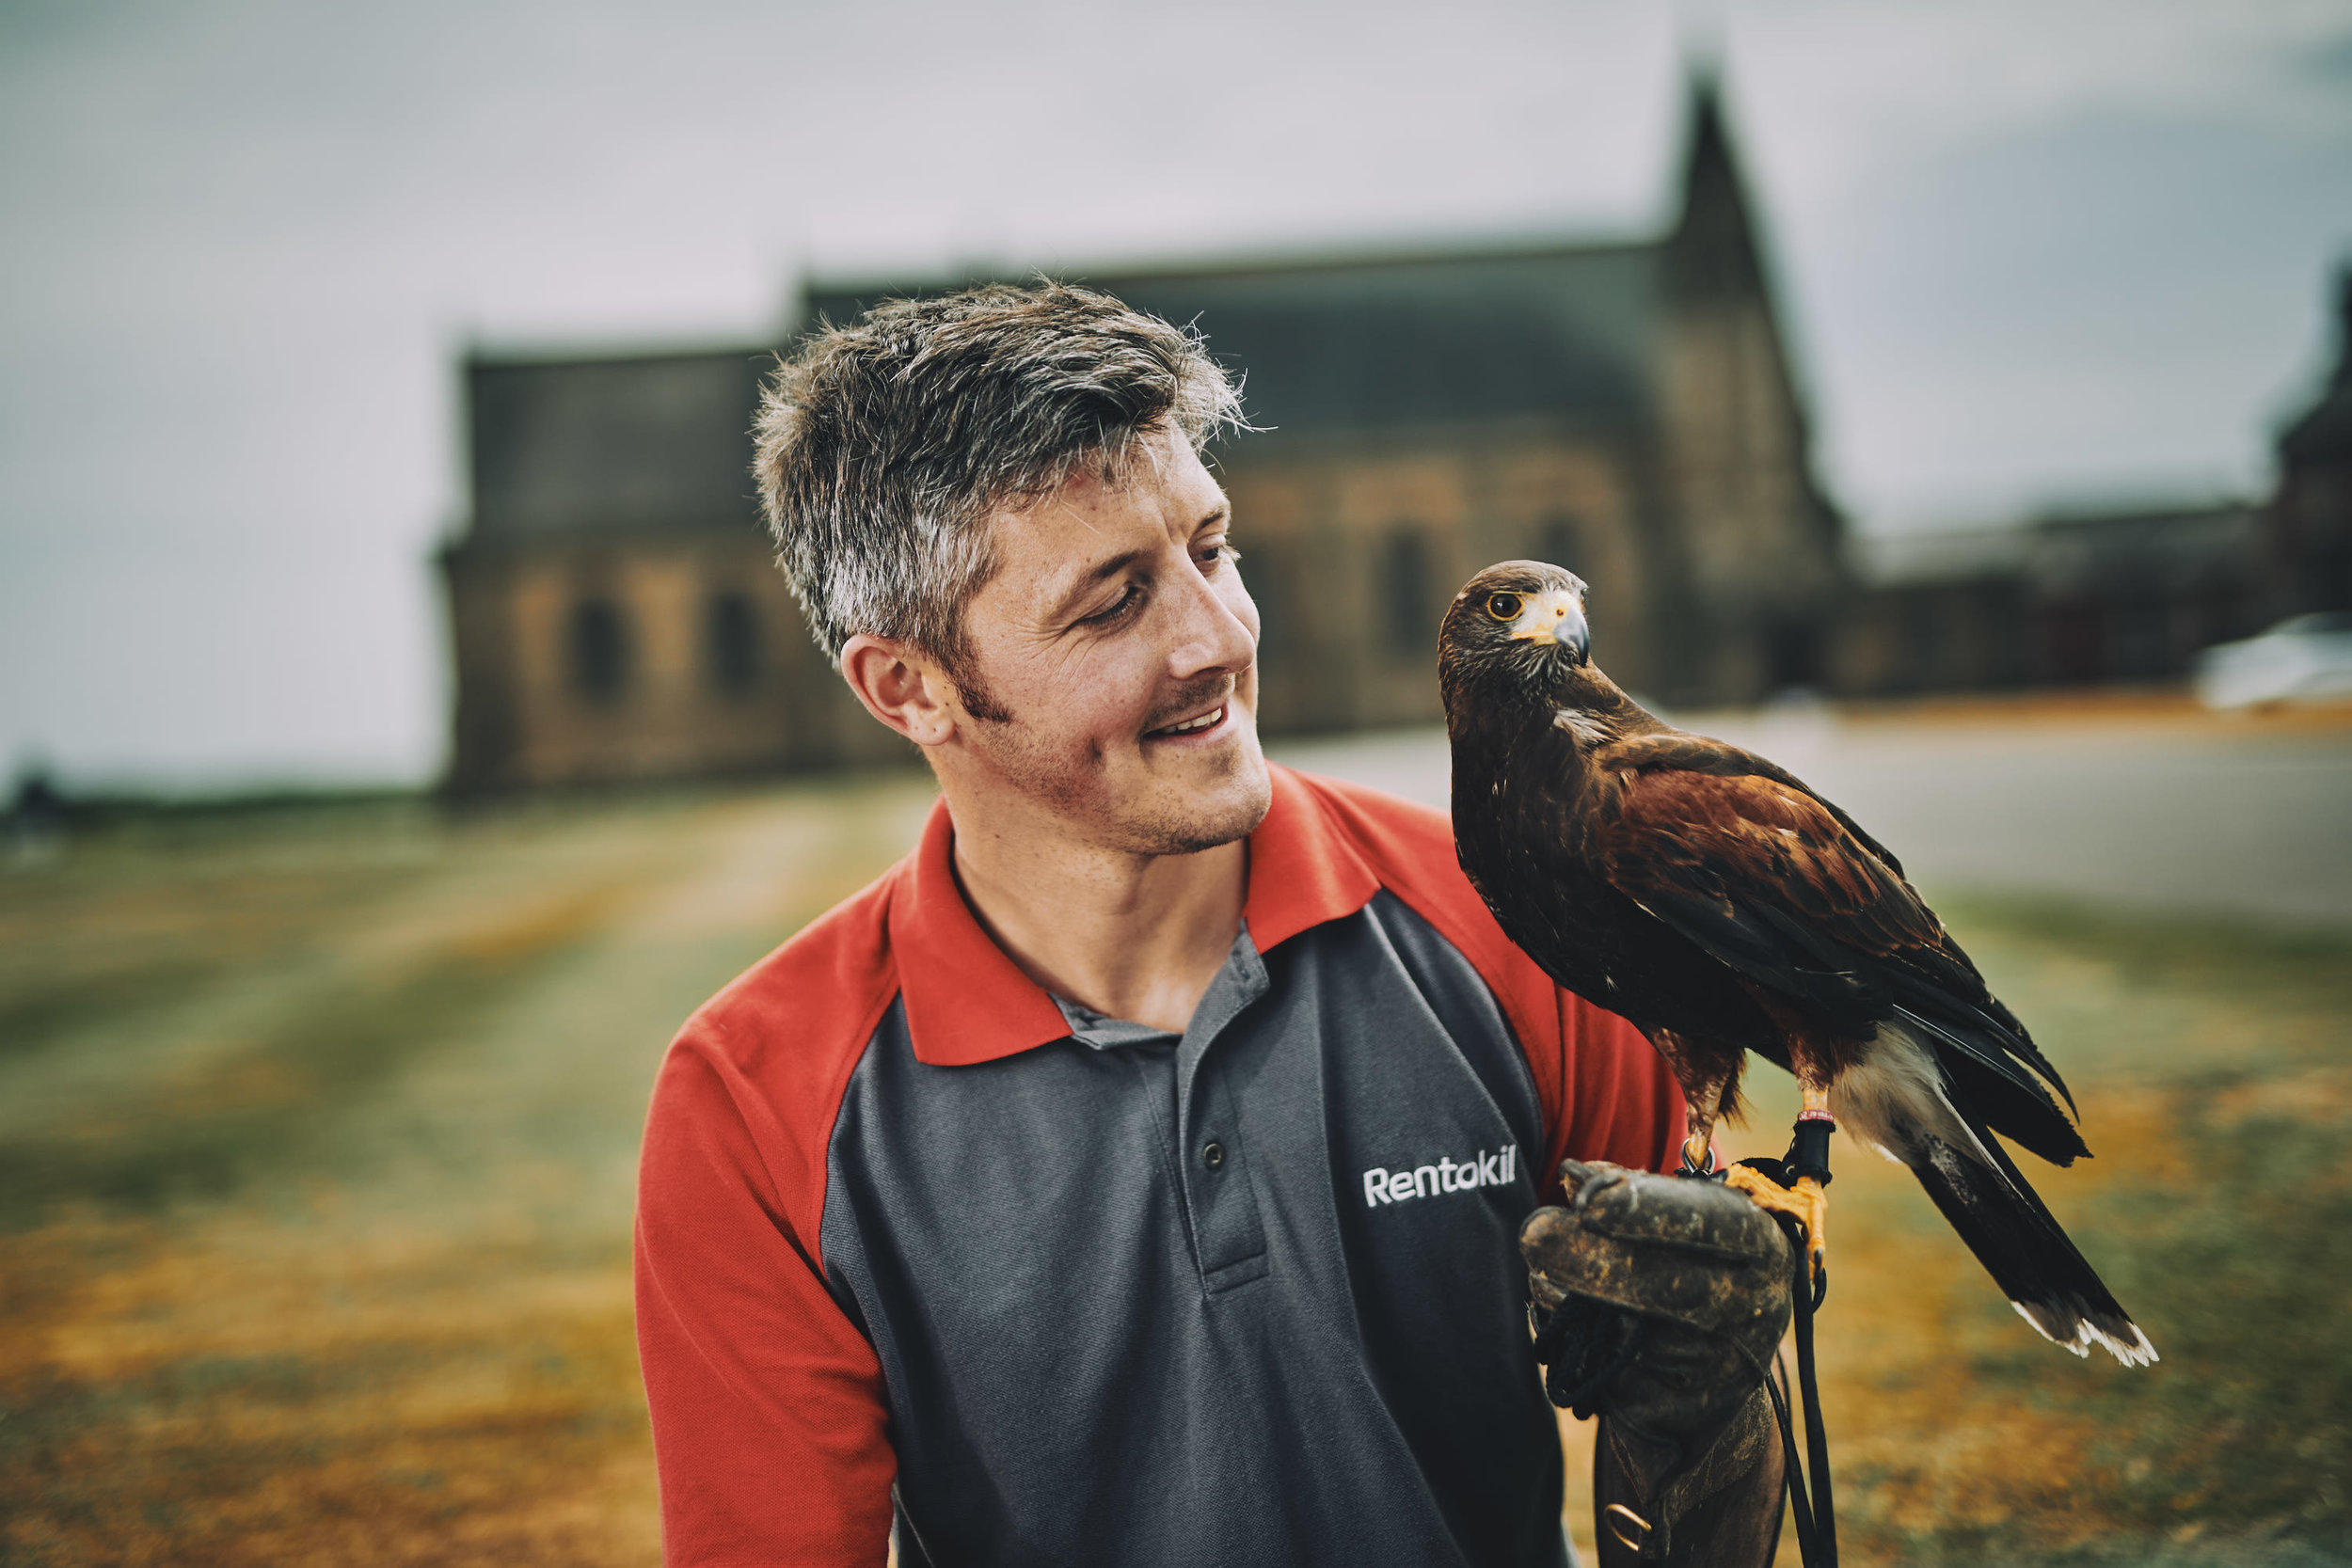 natural environmental reportage  business photography for services business by yorkshire based matthew lloyd 10.jpg